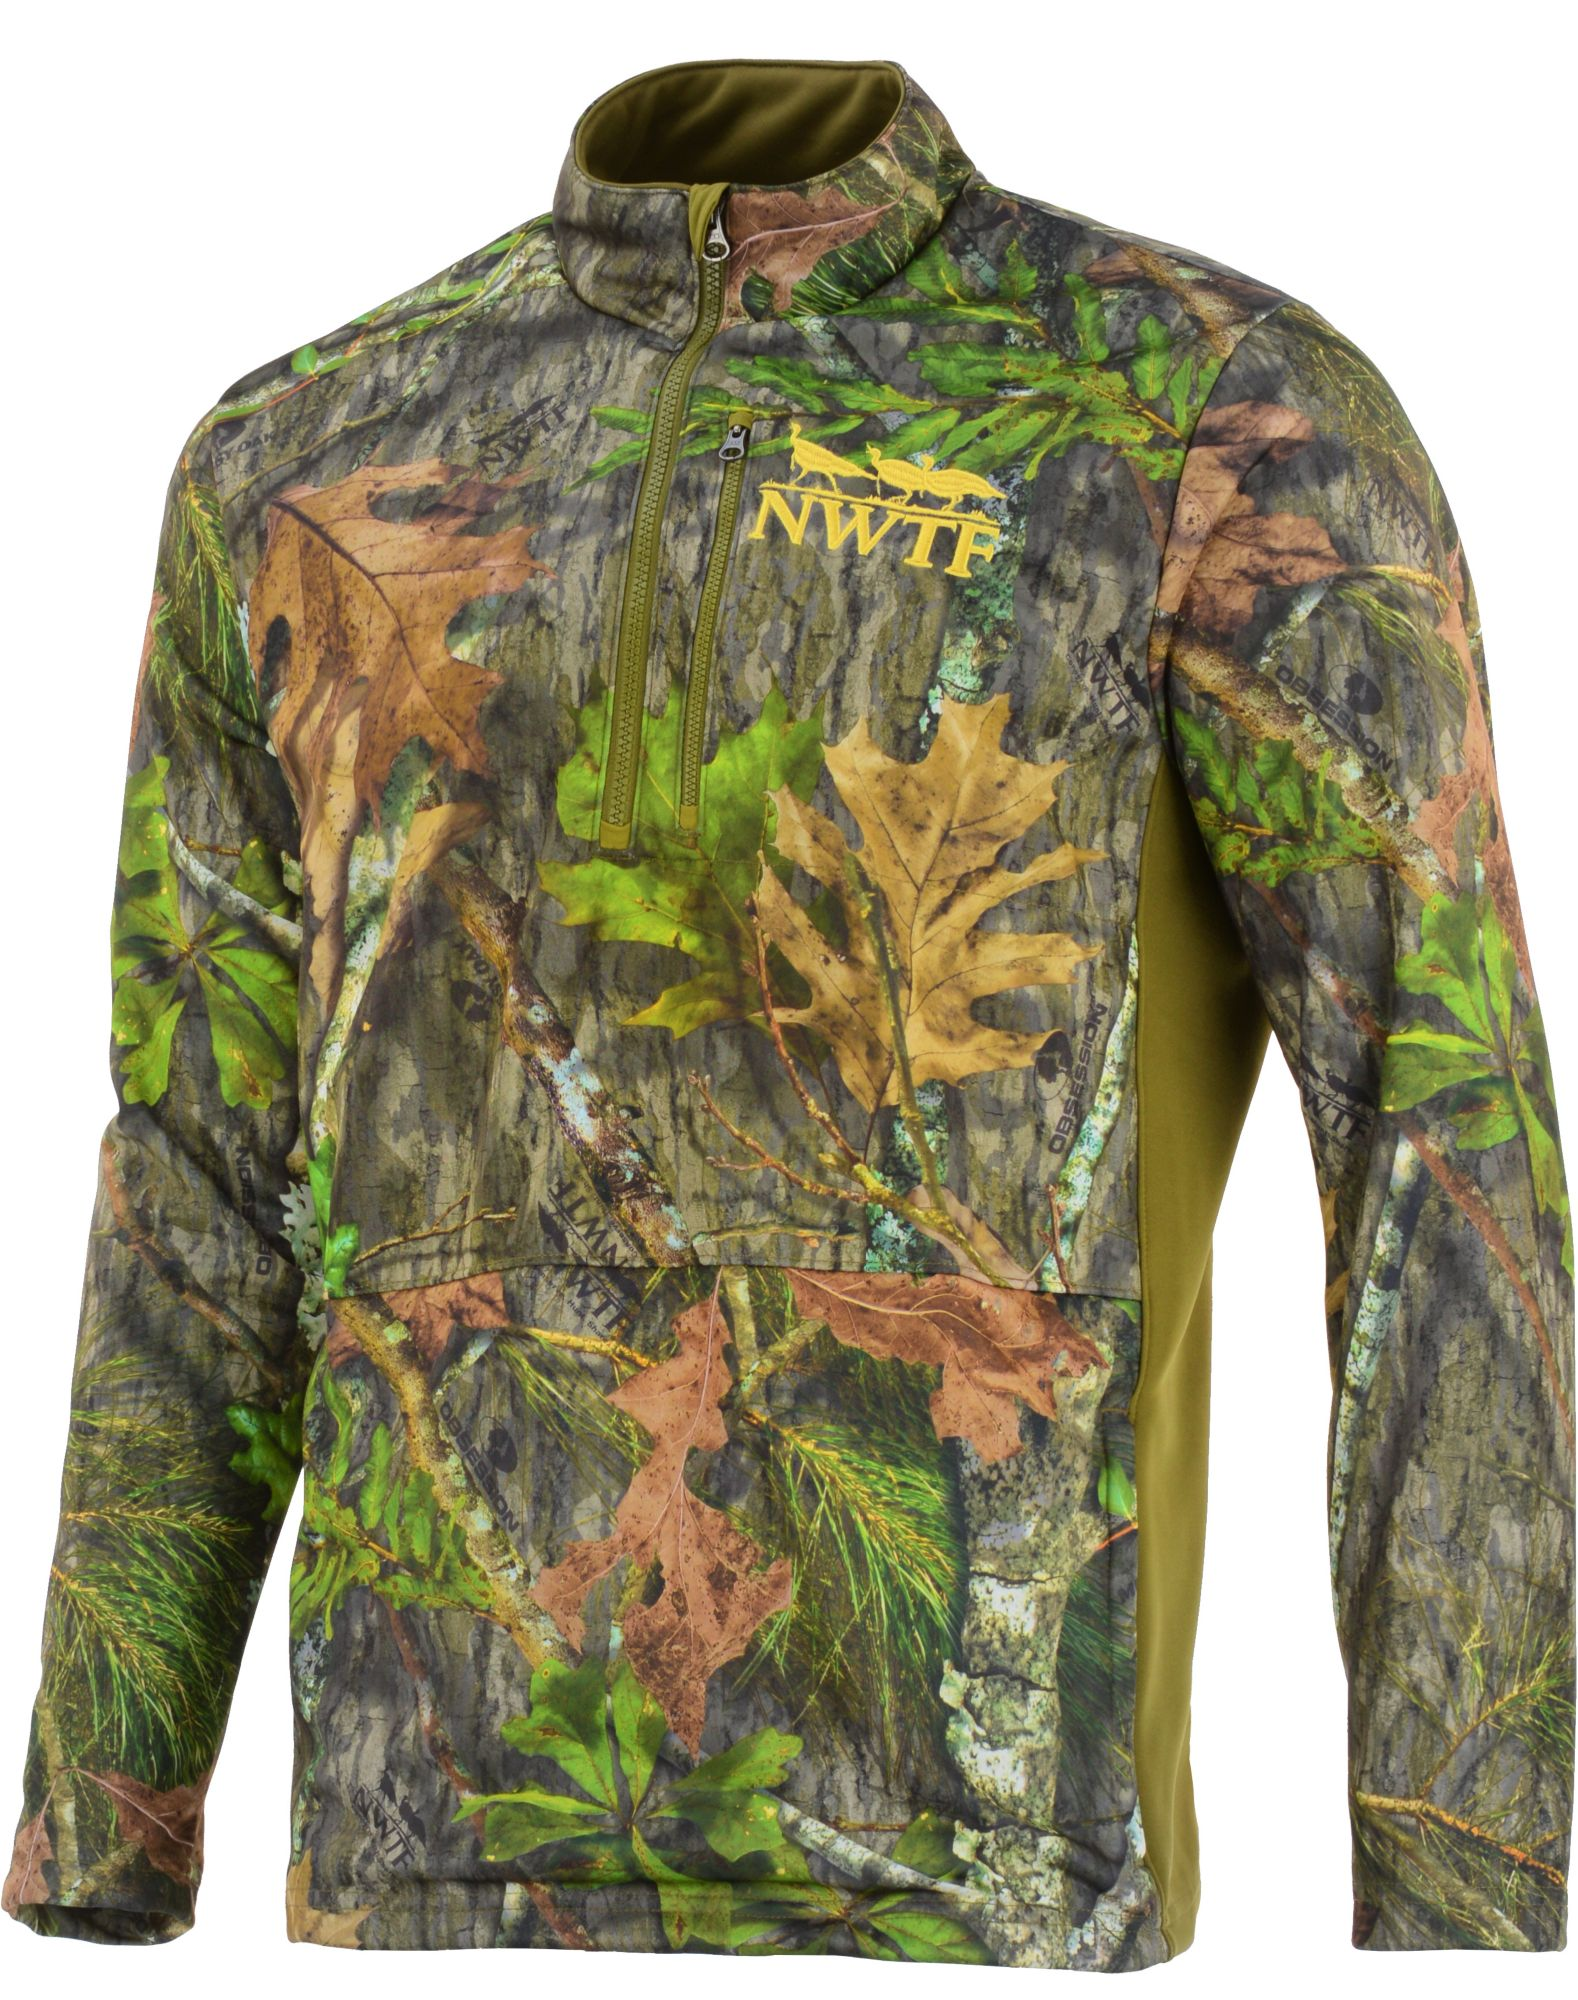 Nomad Men's Nwtf 1/4 Zip Fleece Hunting Jacket, Size: XL, Brown thumbnail